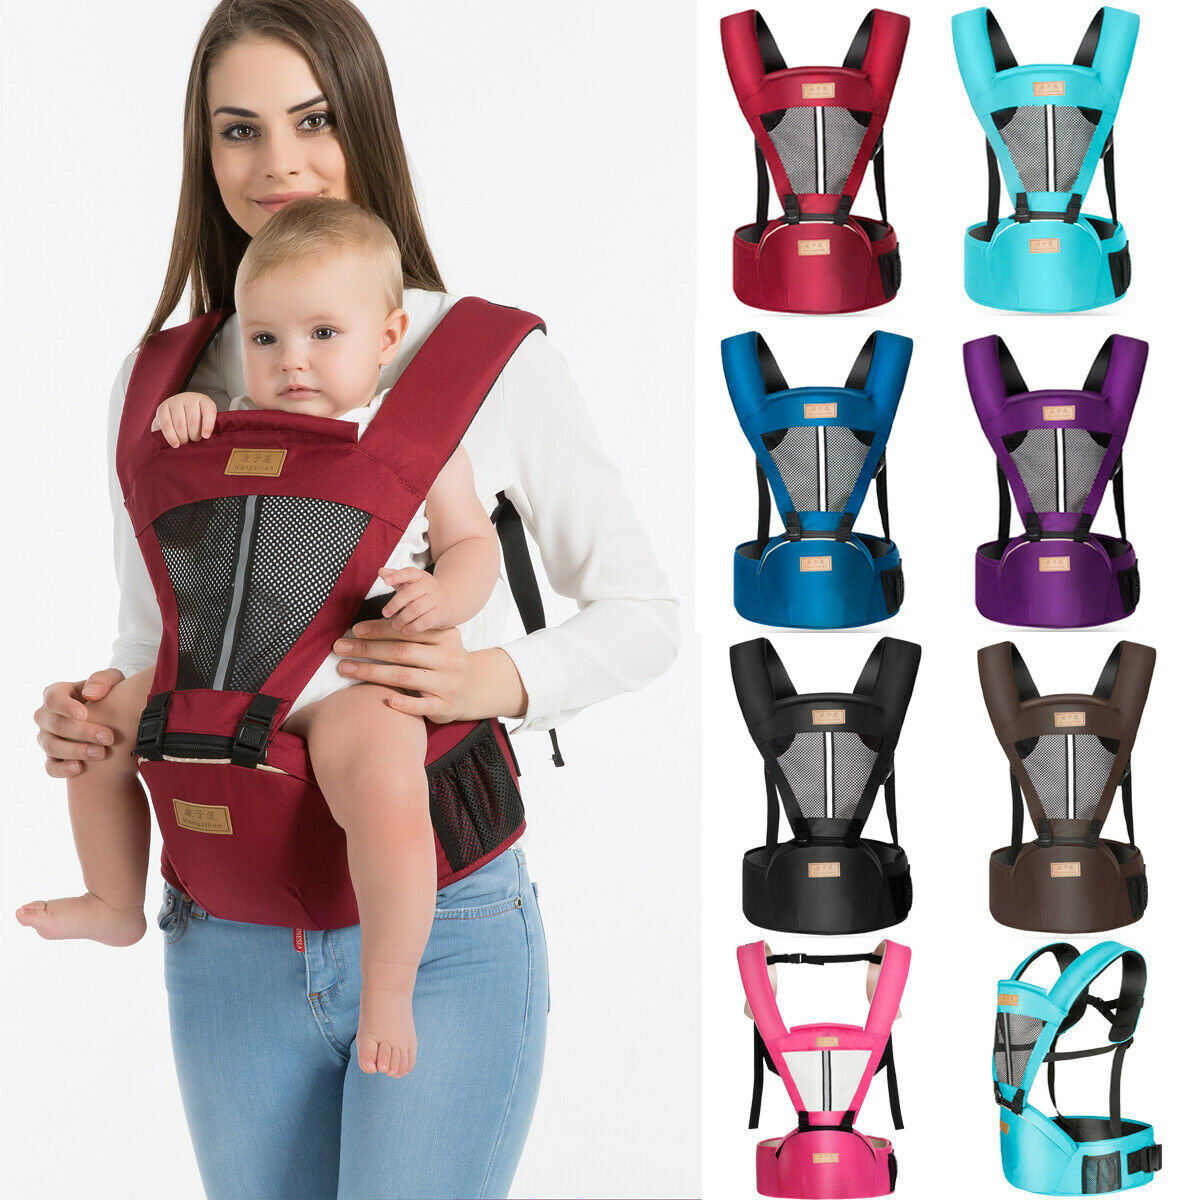 Baby Carrier Kangaroo Toddler Sling Wrap Portable Infant Hipseat Soft Breathable Adjustable Hip Seat 0-36 Months